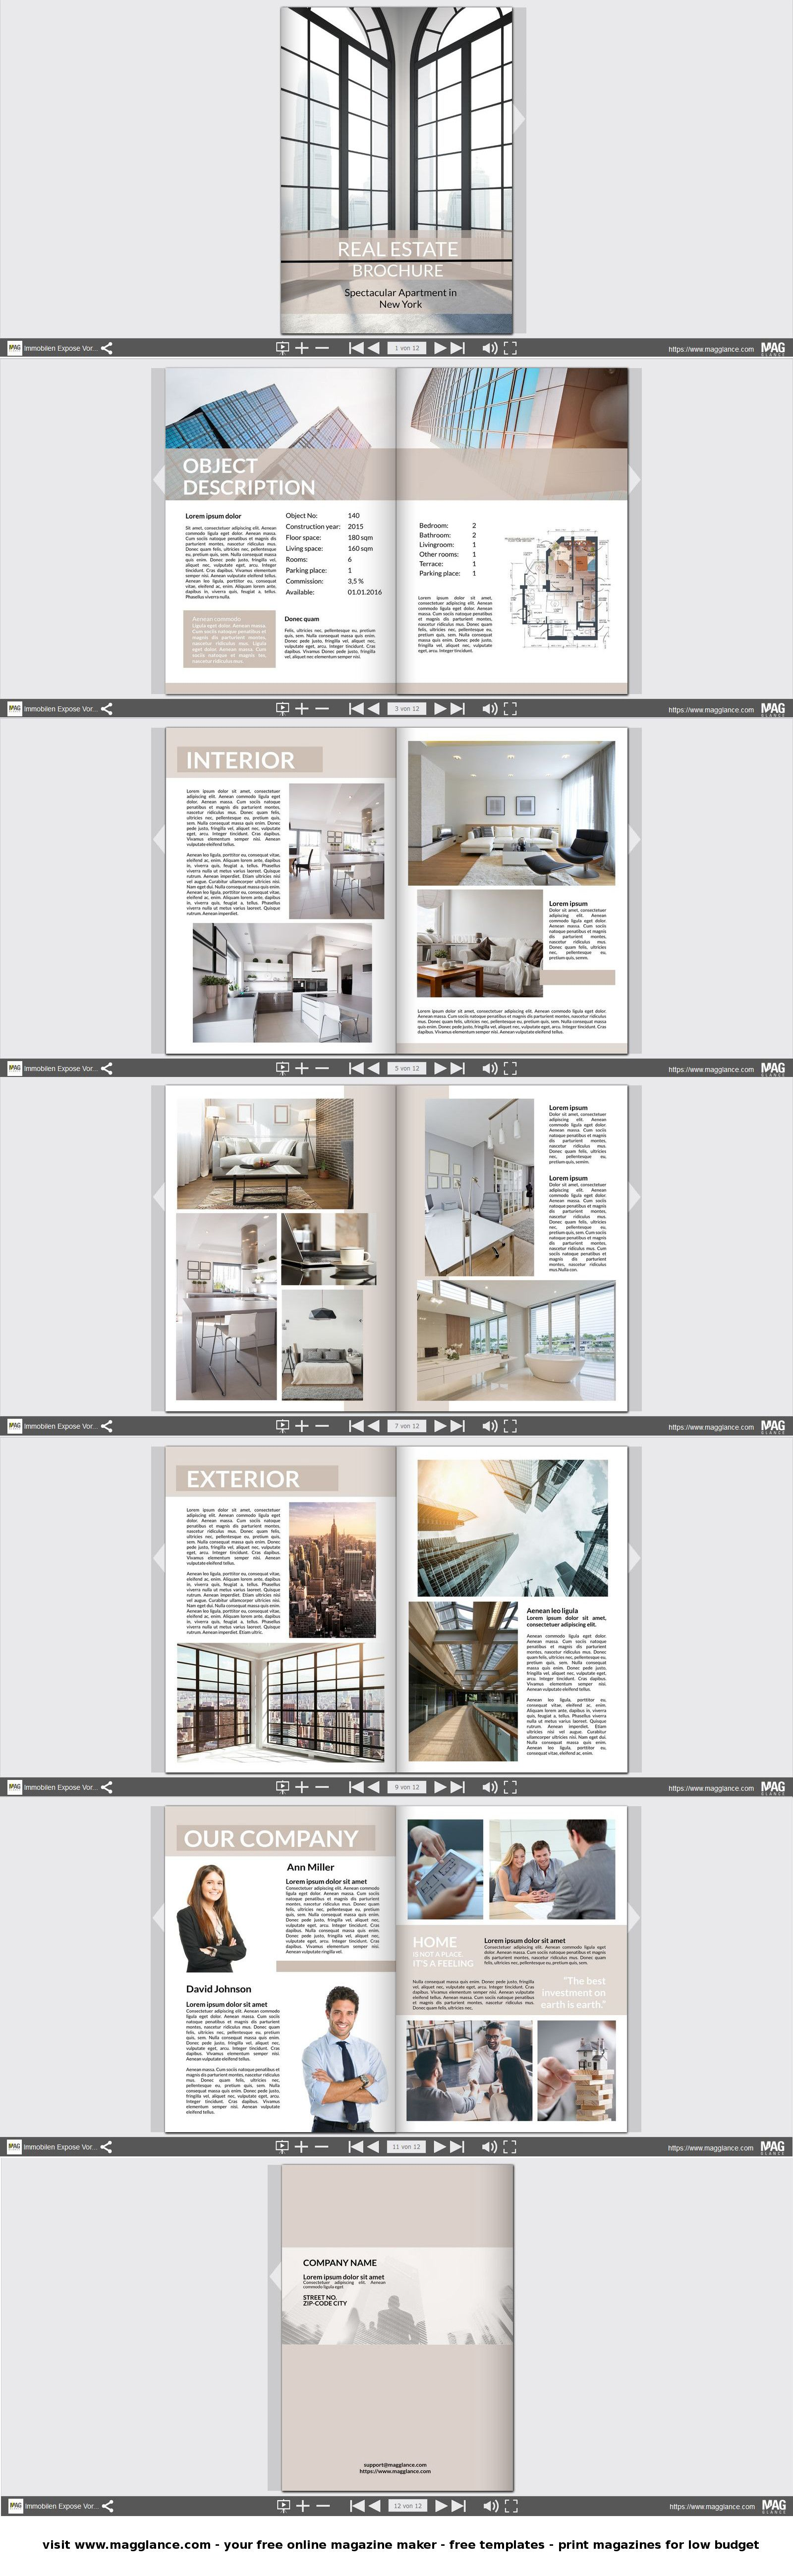 D ownload Free Real Estate Powerpoint Templates Design now and see the distinction. This is a good useful resource also for Advertising PowerPoint Templates or Business Backgrounds for PowerPoint or business presentation powerpoint templates to master your strategic thinking.